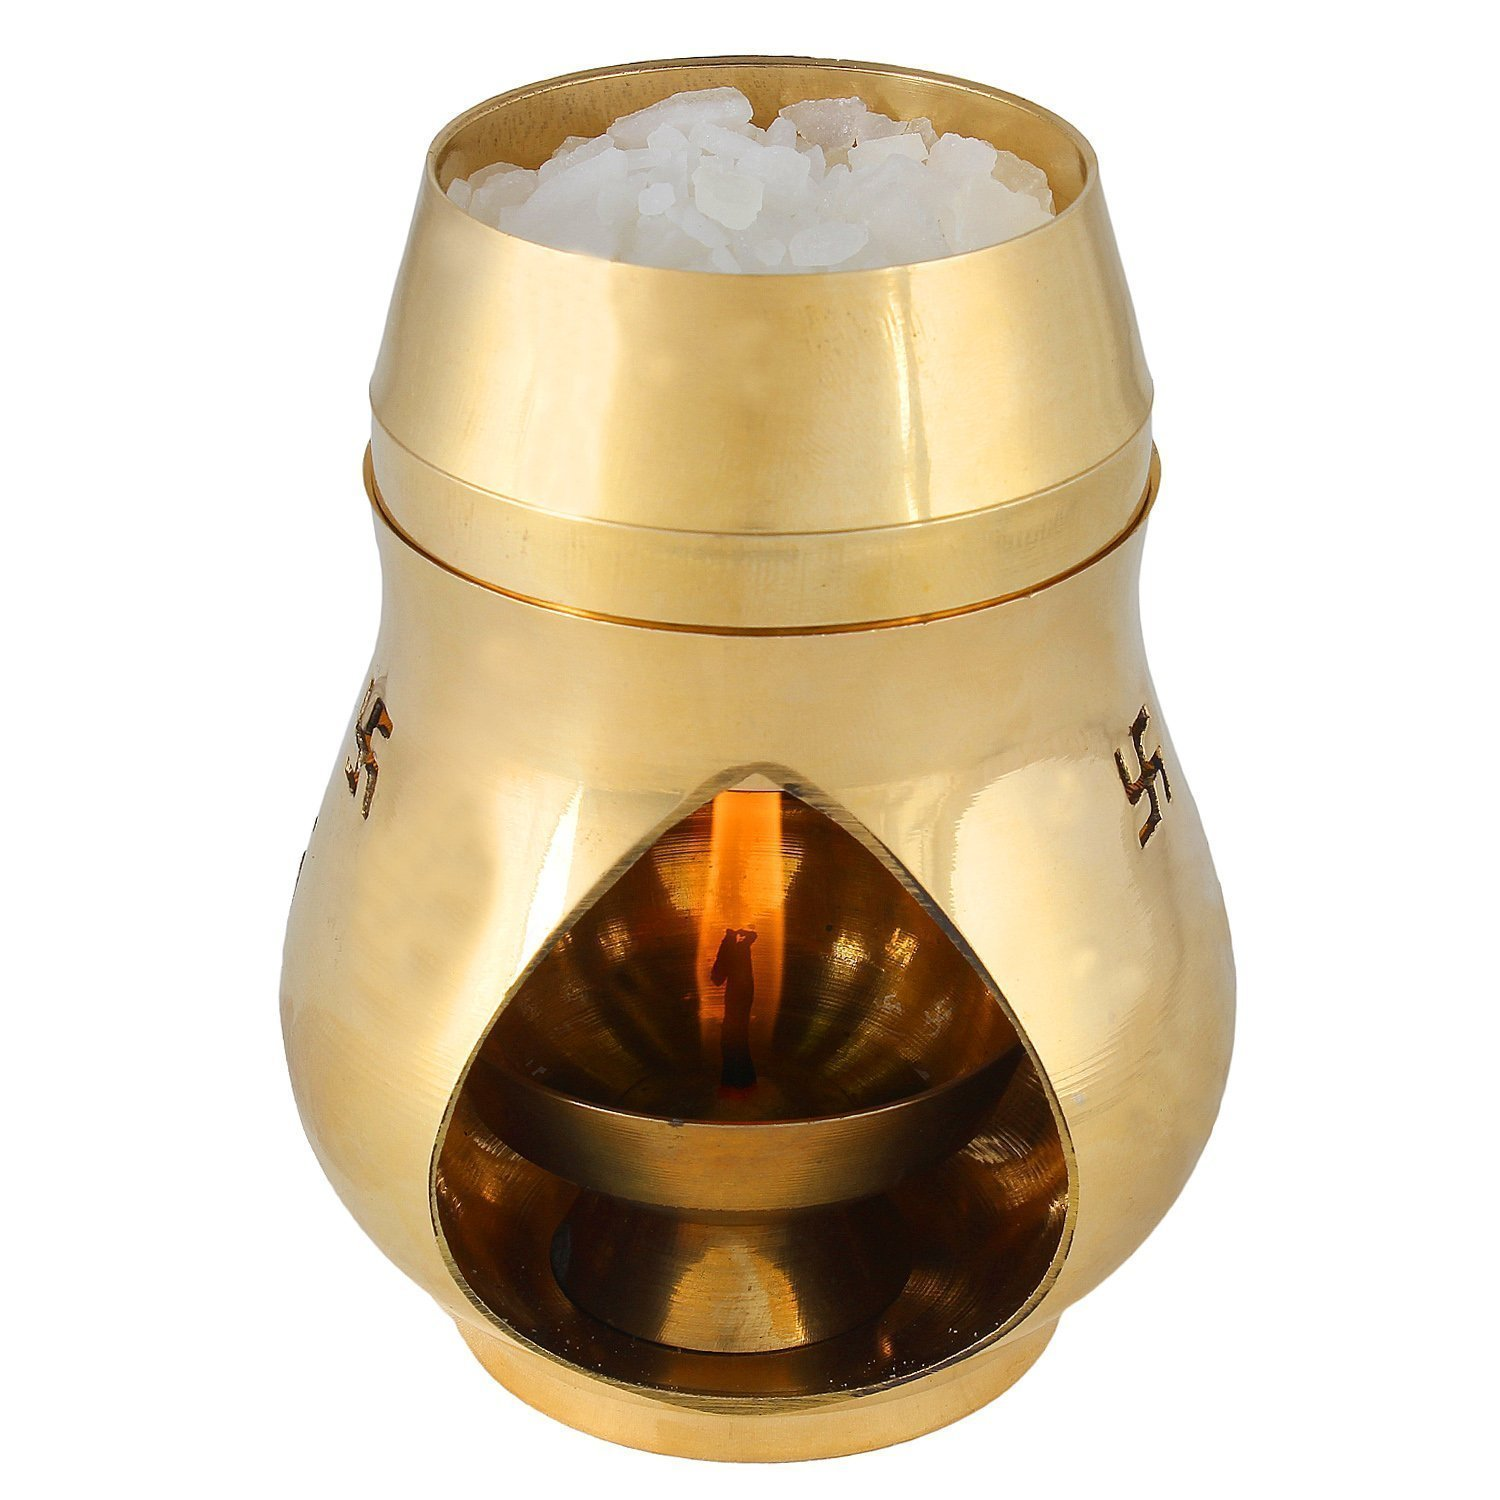 Odishabazaar Positive Aura Brass Camphor Lamp- Protect House From All Negative Energies (gold)